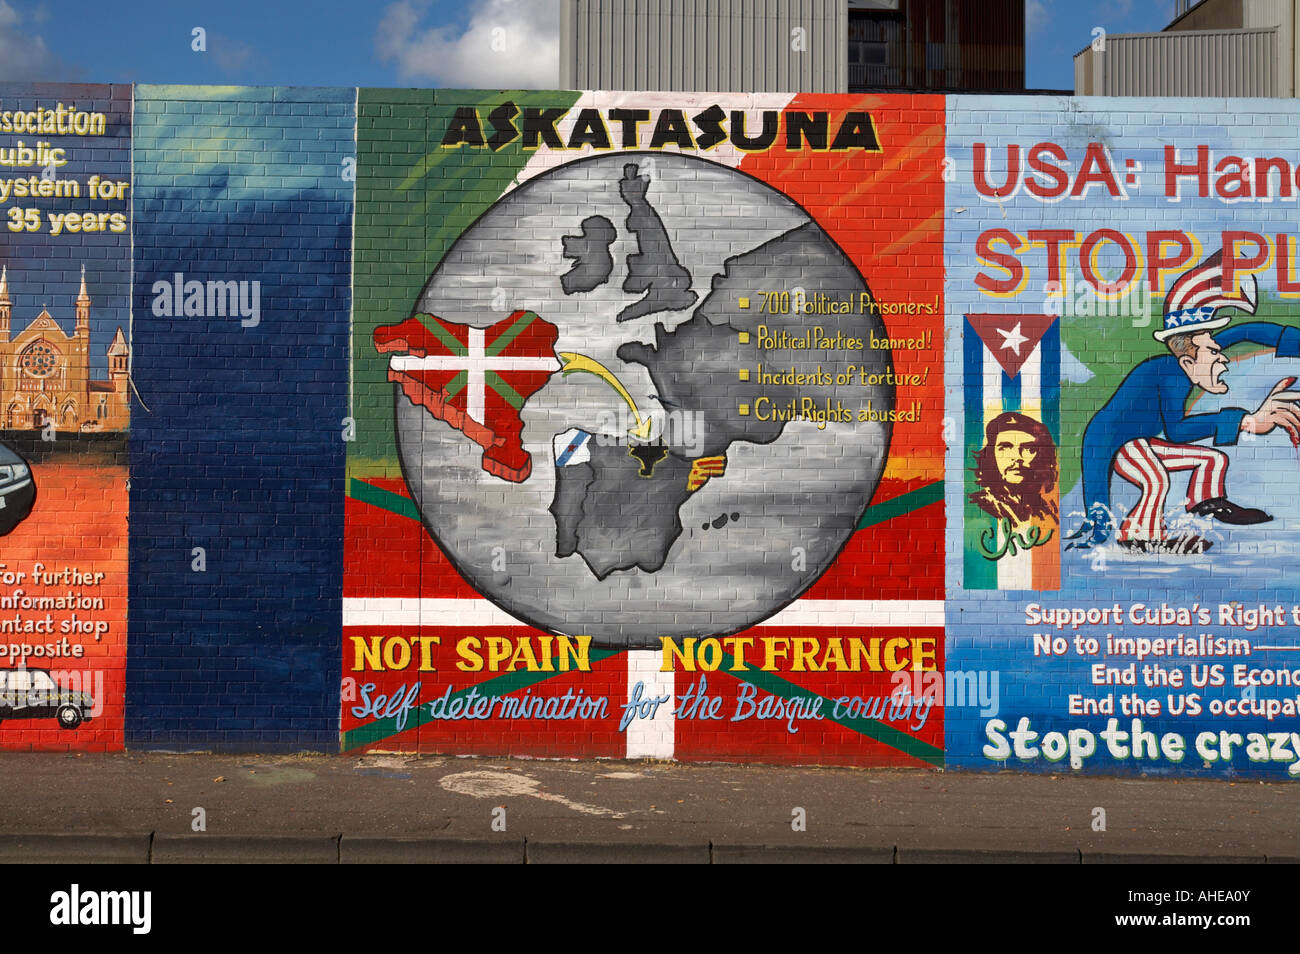 Askatasuna Basque country mural as part of International wall murals